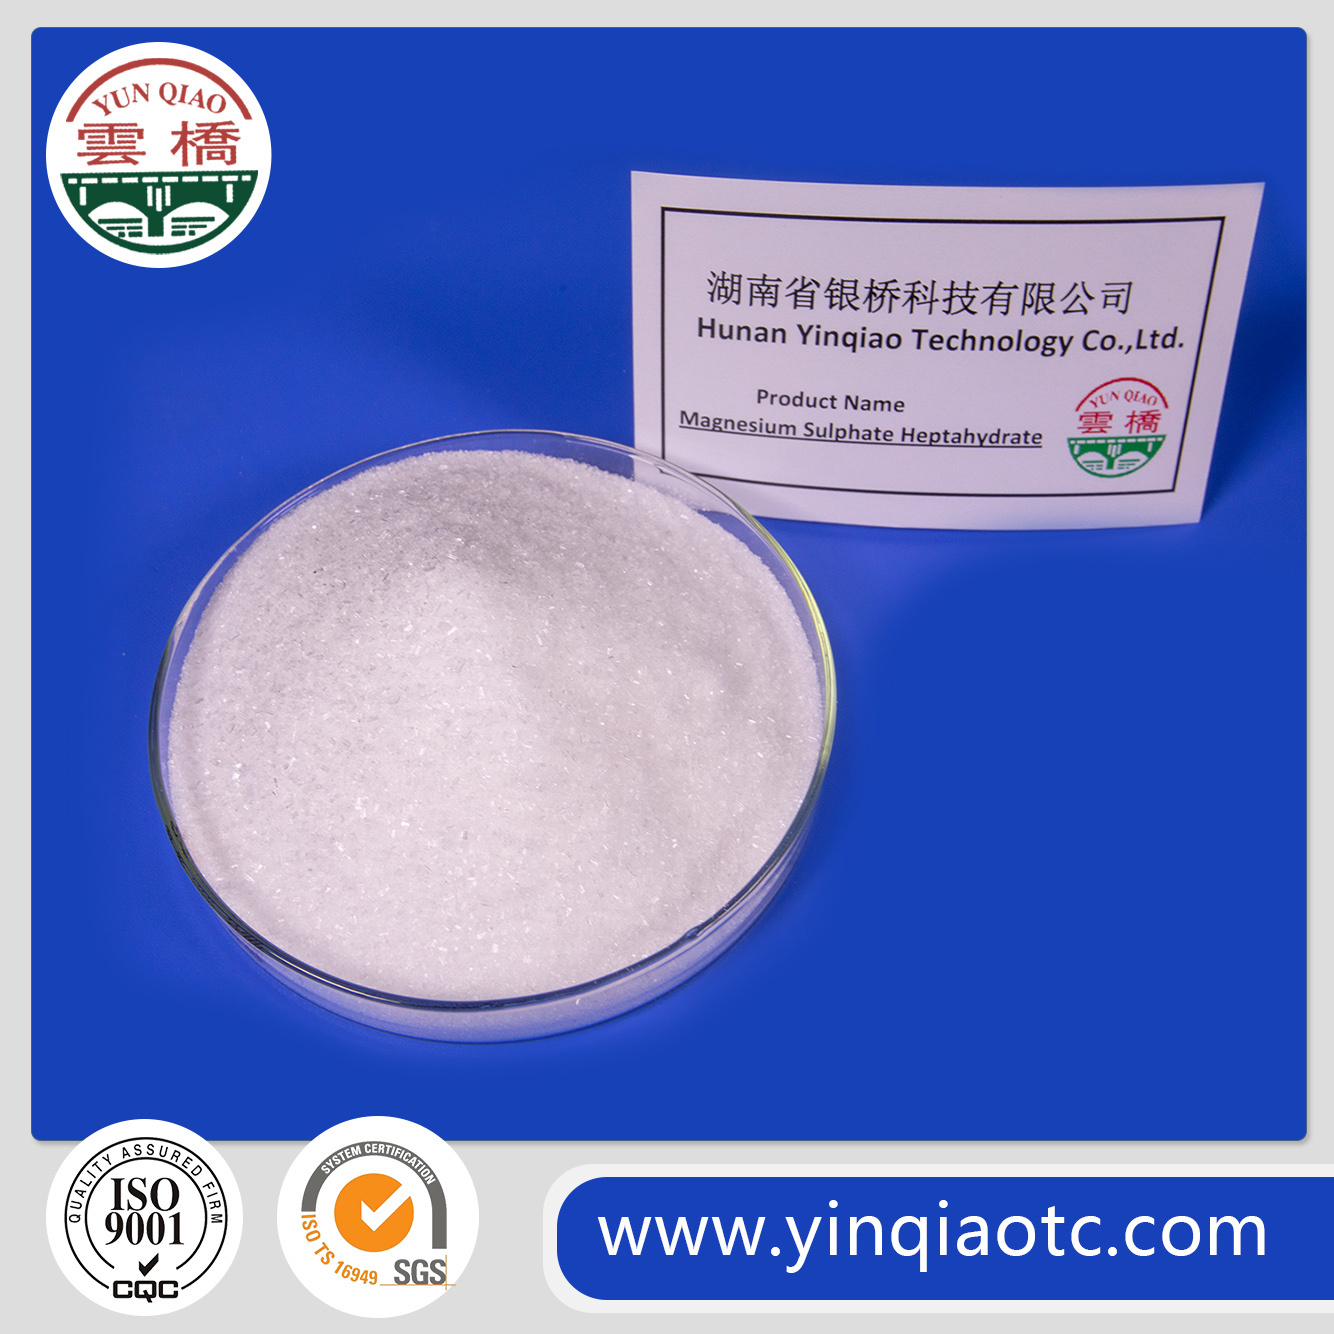 Hot Sales! Heptahydrate Magnesium Sulphate Mgso4 7H2O. CAS No. 10034-99-8